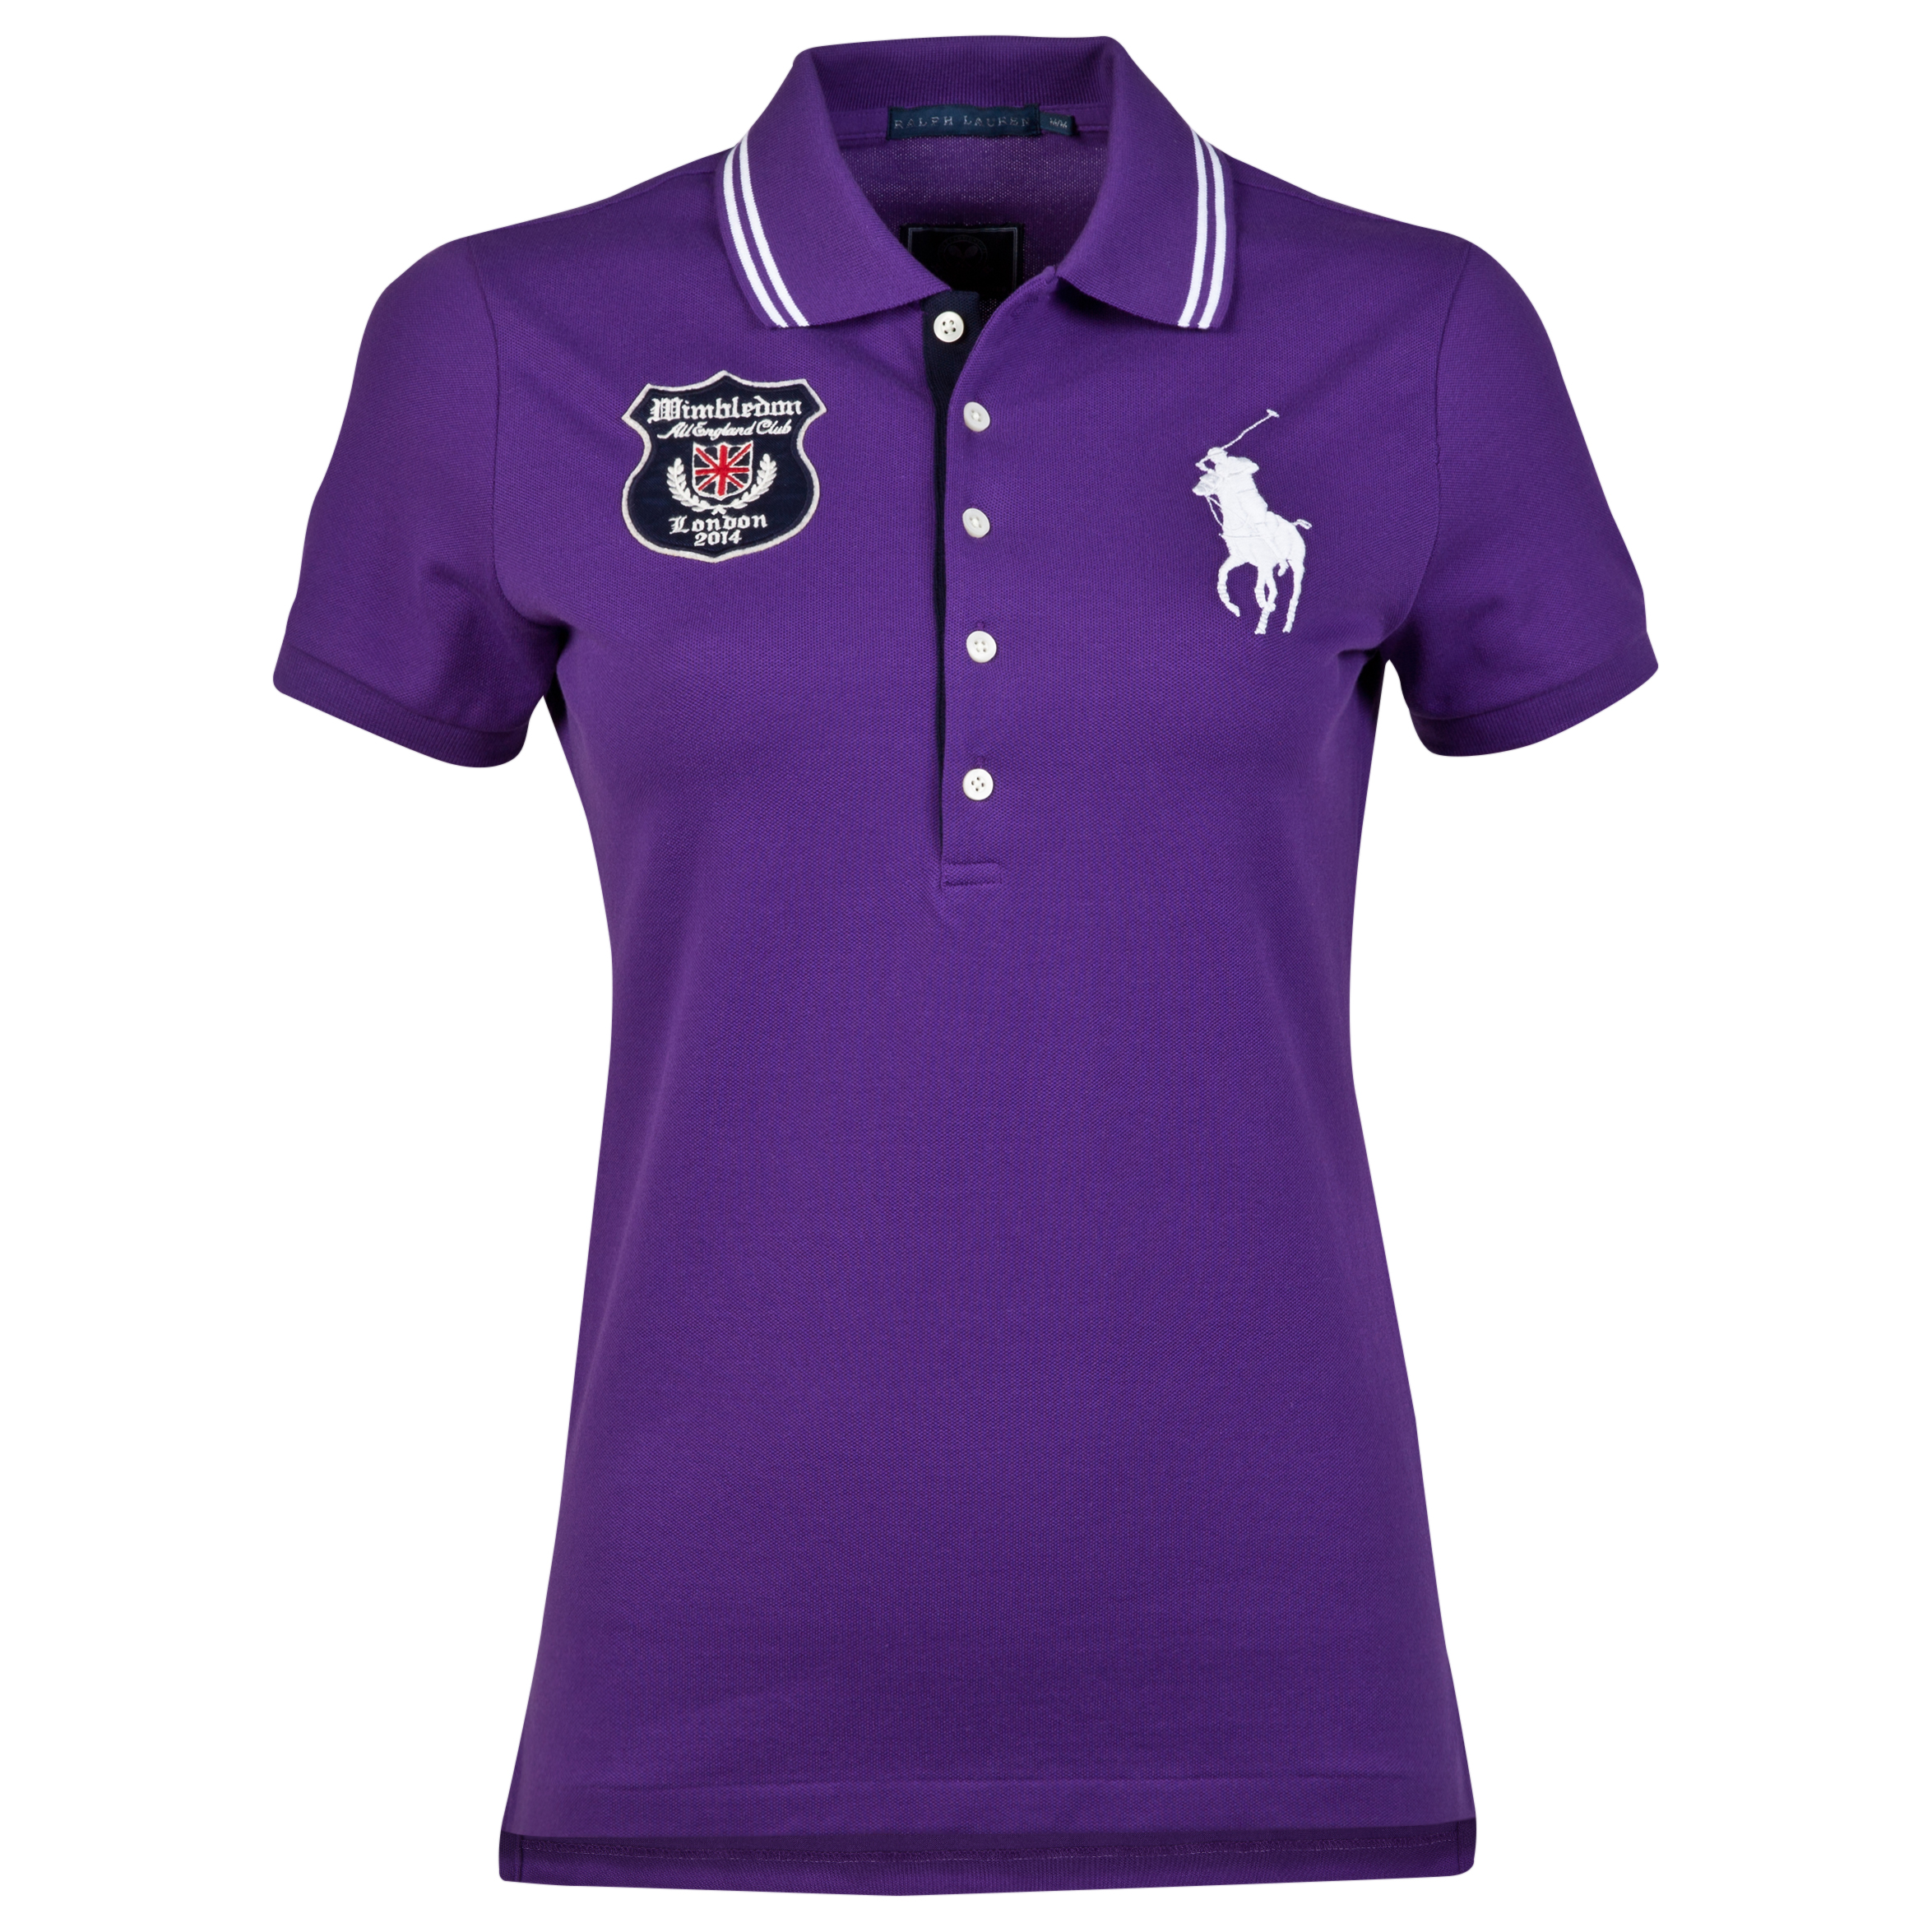 Wimbledon Ralph Lauren Wimbledon Mora Long Placket Polo - Womens Purple